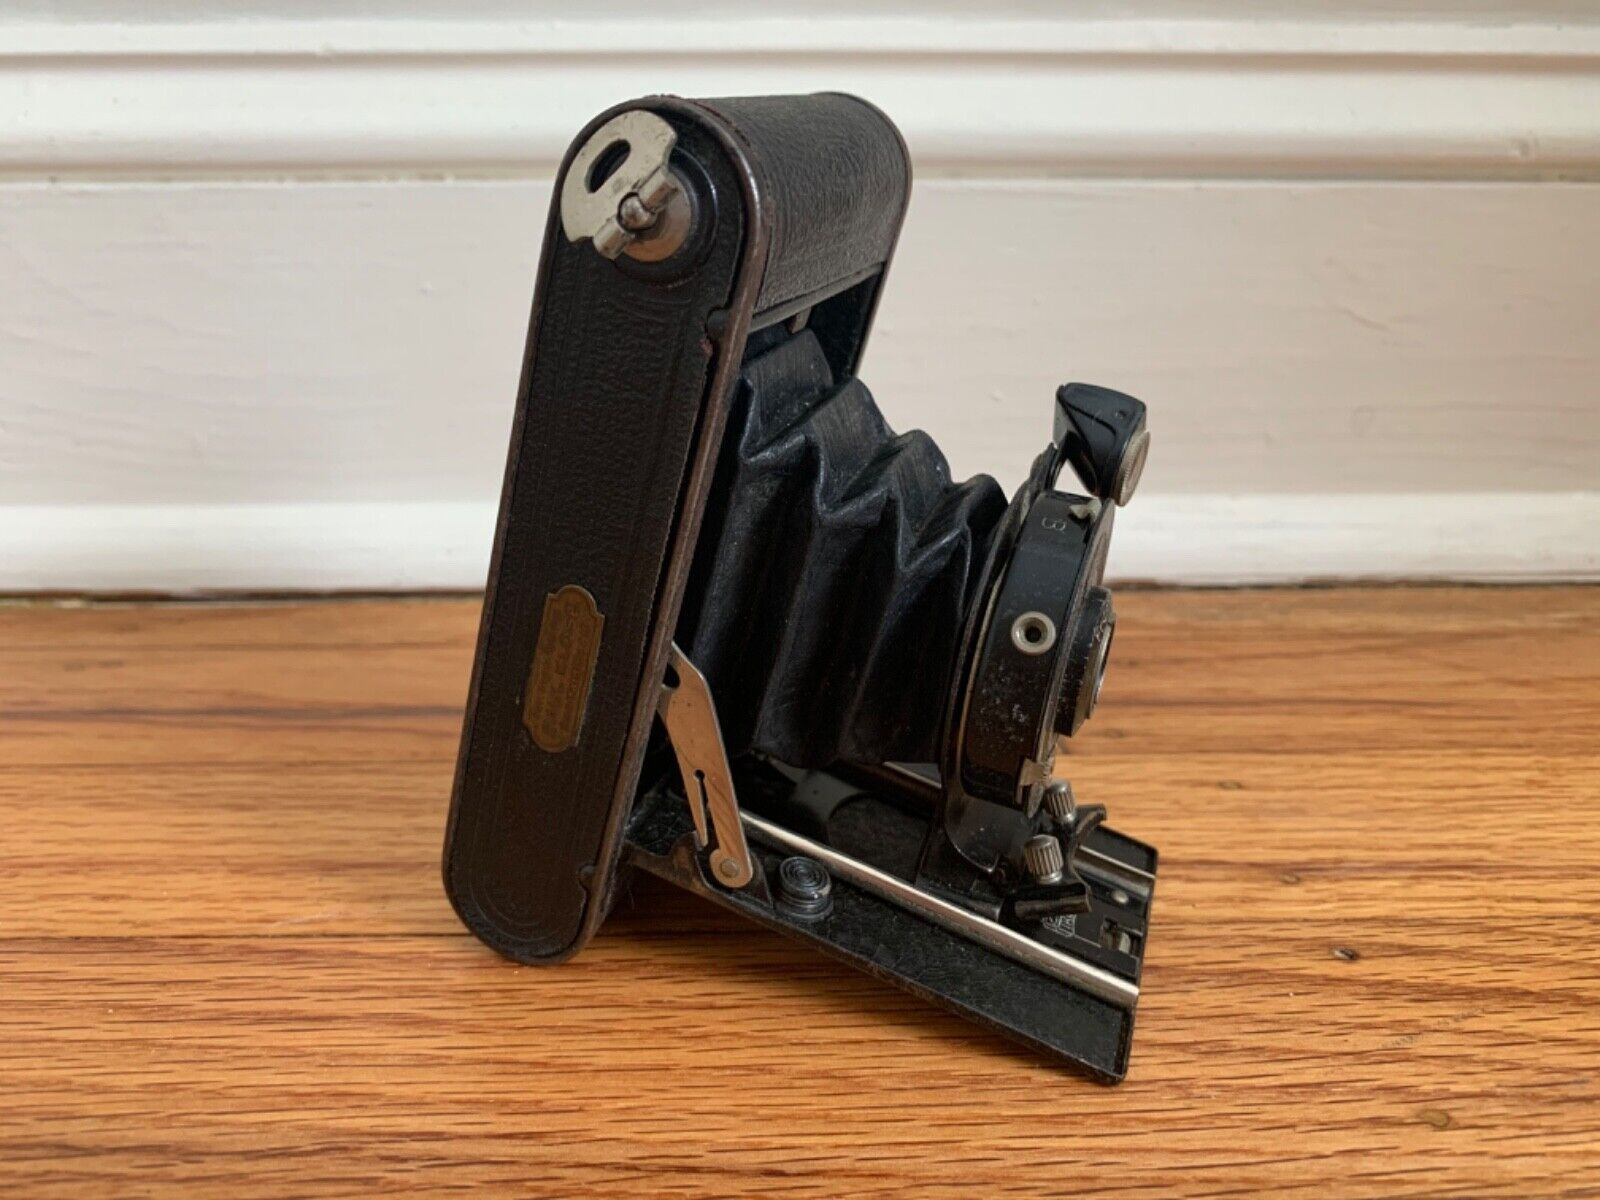 Zeiss - Ikon - Ikonette Camera - SOLD AS IS - Parts Or Display - $6.95